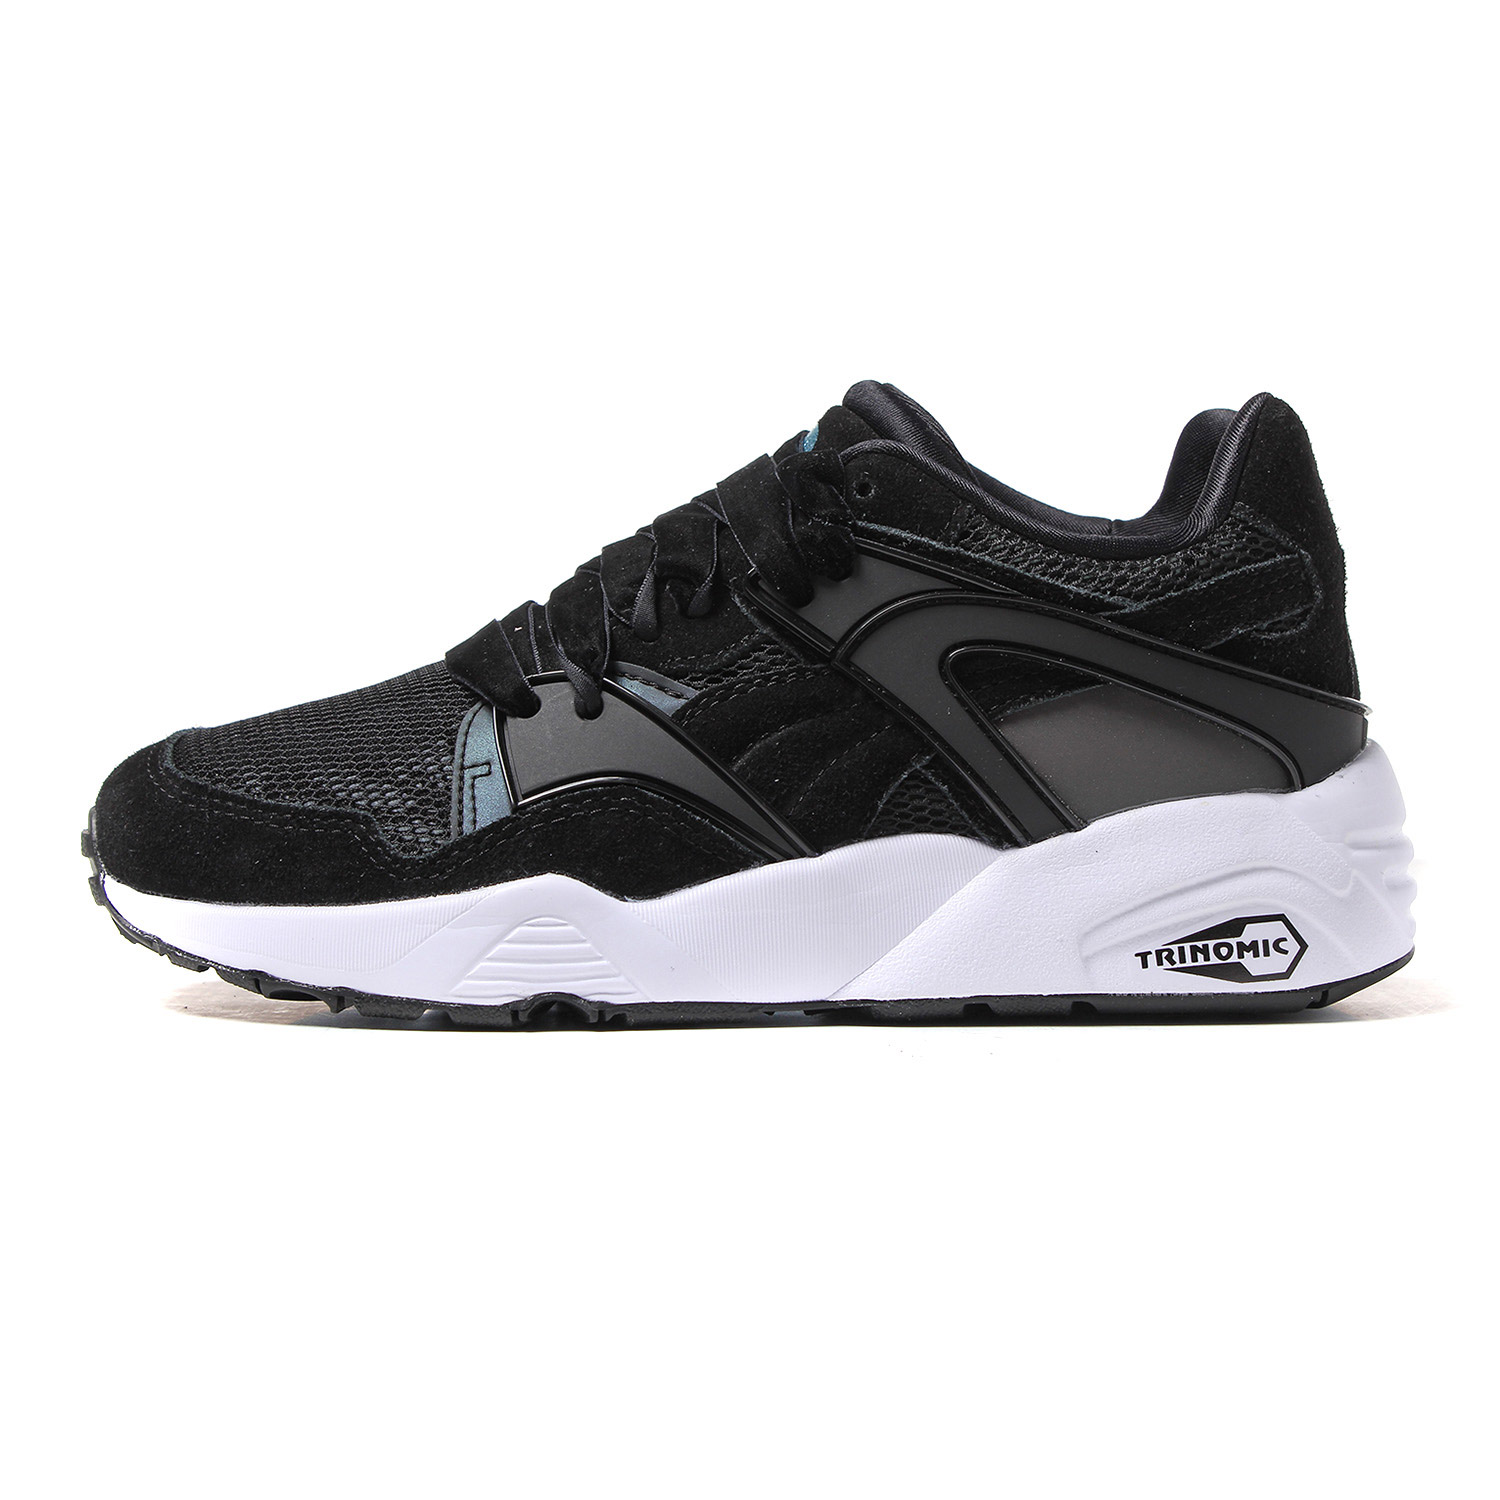 Puma Puma shoes casual shoes 2017 spring new sports shoes Black Swan star  with the same paragraph Liu Wen 36272301 09337357c